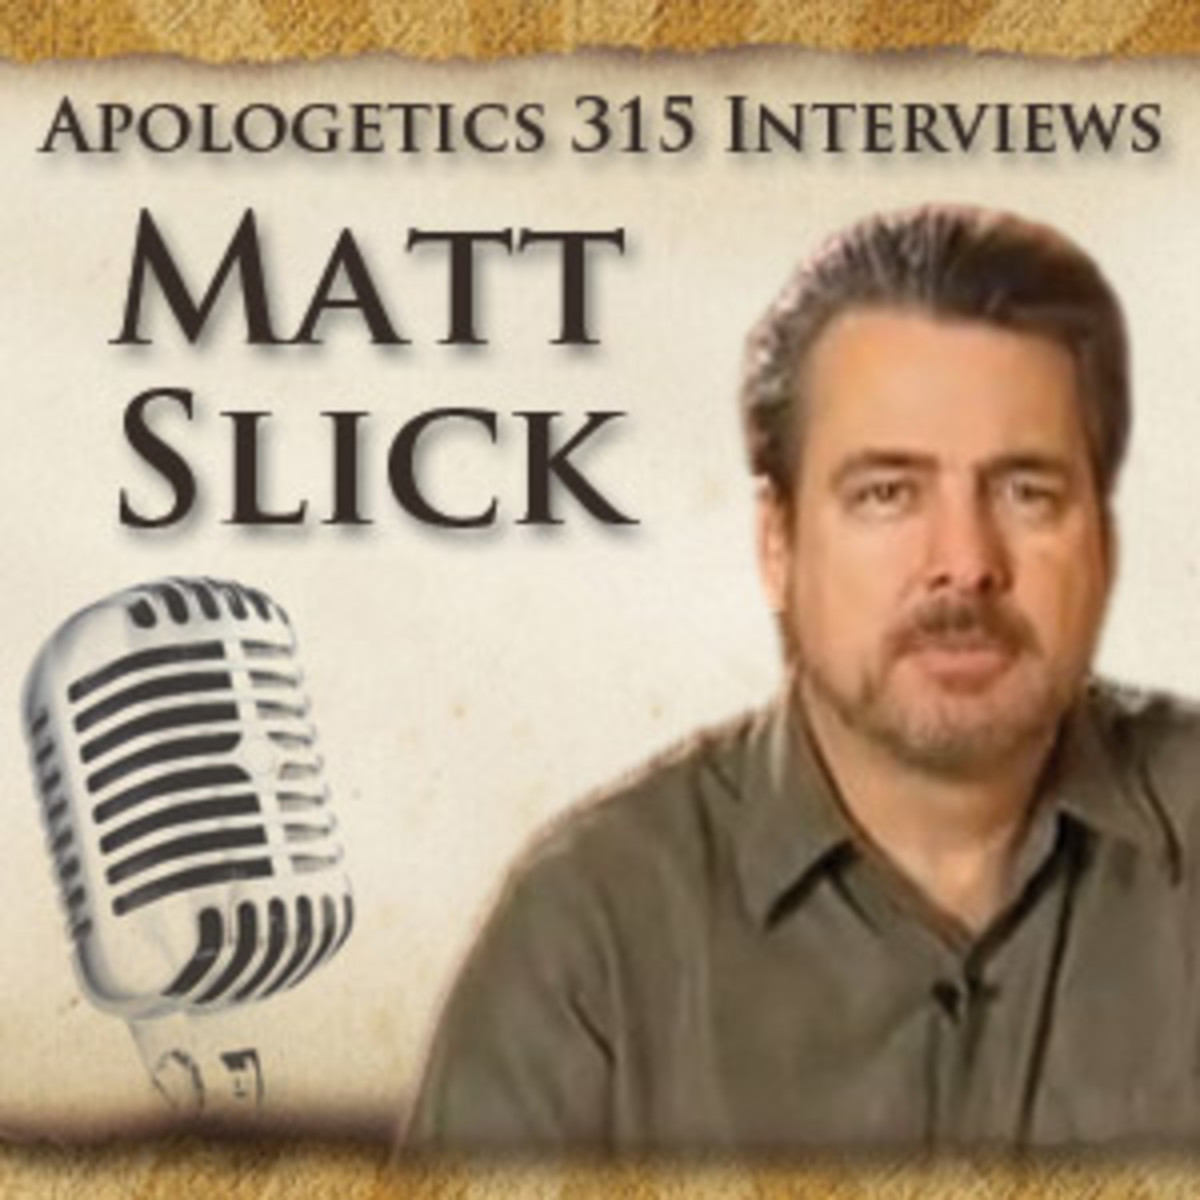 DEBATE: Matt Slick vs Fatfist on LOGICAL ABSOLUTES